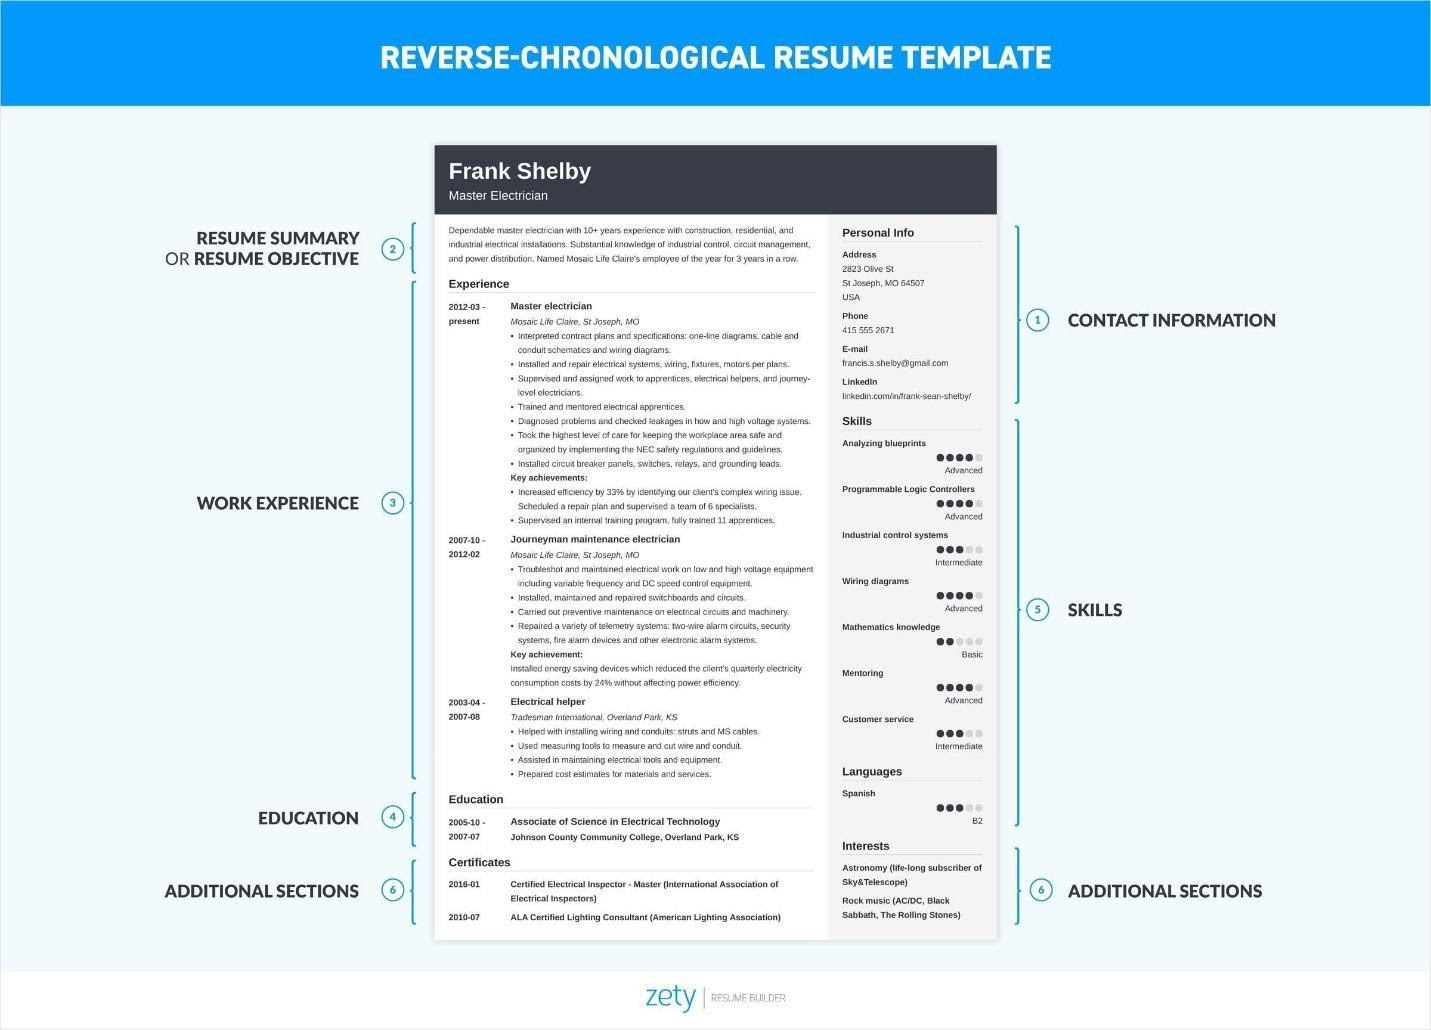 tips for writing successful student resume after graduation writers boca raton past tense Resume Resume Writers Boca Raton